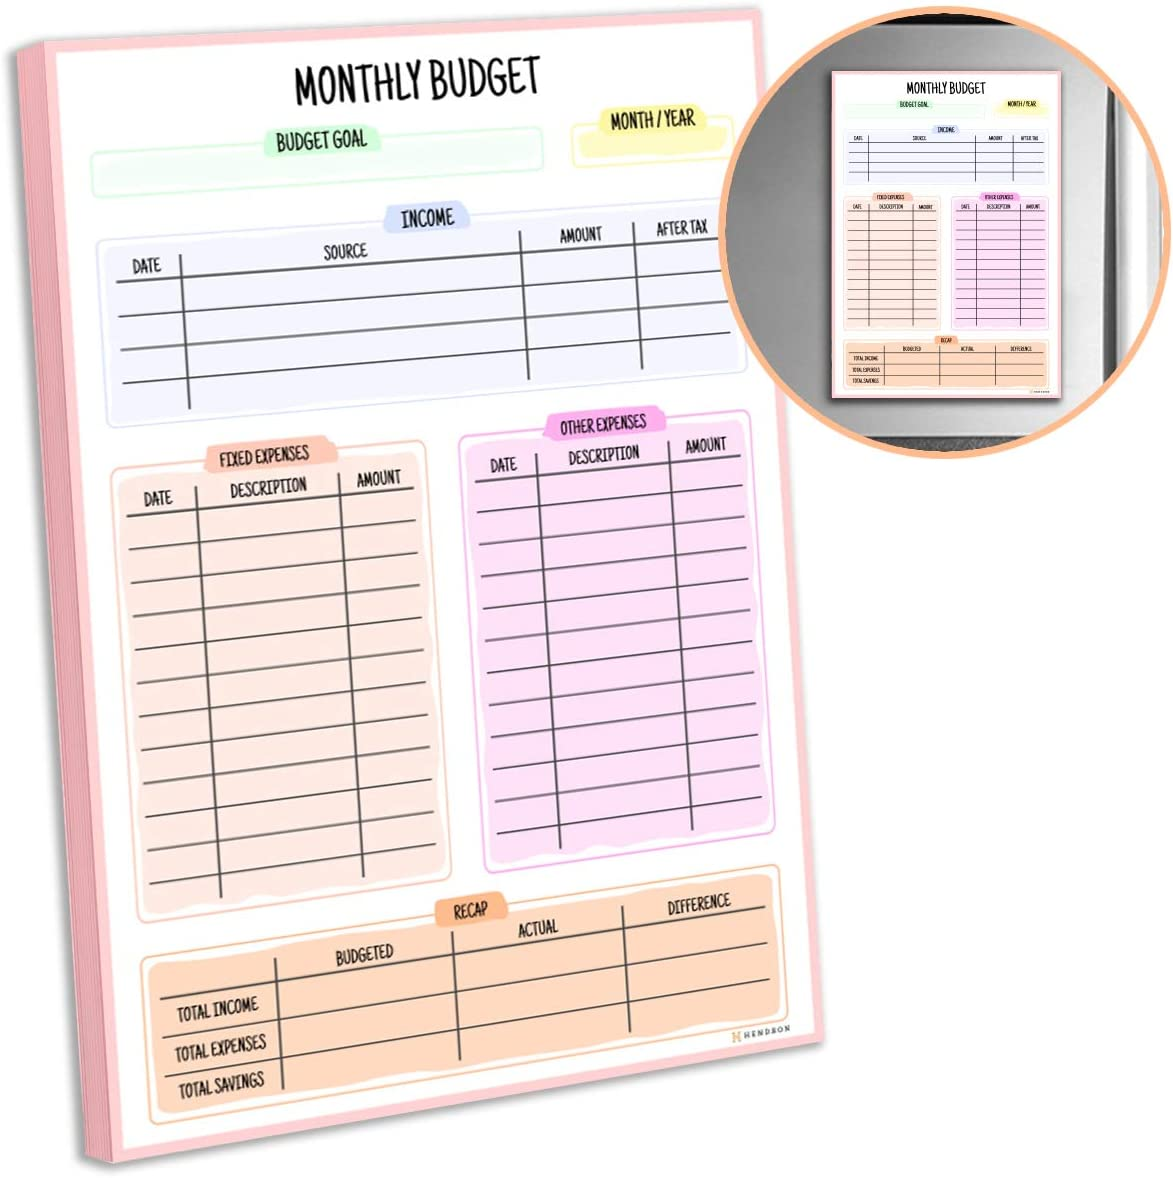 Budget Planner Pad for Fridge | Financial Organizer, Expense Tracker Magnetic Notepad | Monthly Budgeting & Bill Planning Ledger | 7 x 10 Inches, 52 Sheets | Take Control of Your Money